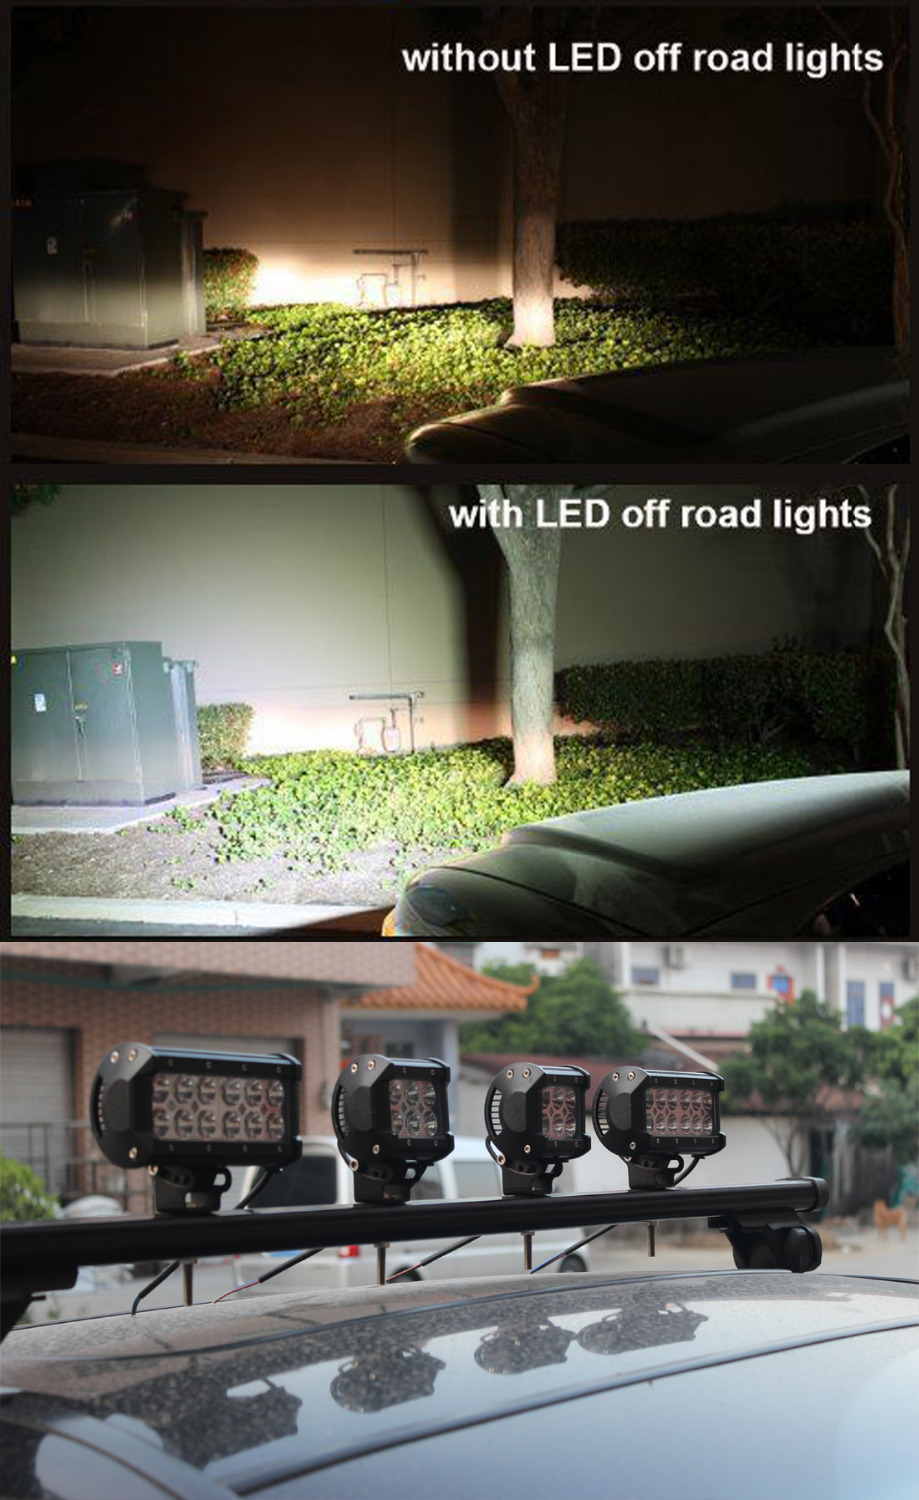 1x Safego 6inch offroad 36w led light bar 4x4 trucks off road led - Car Lights - Photo 6